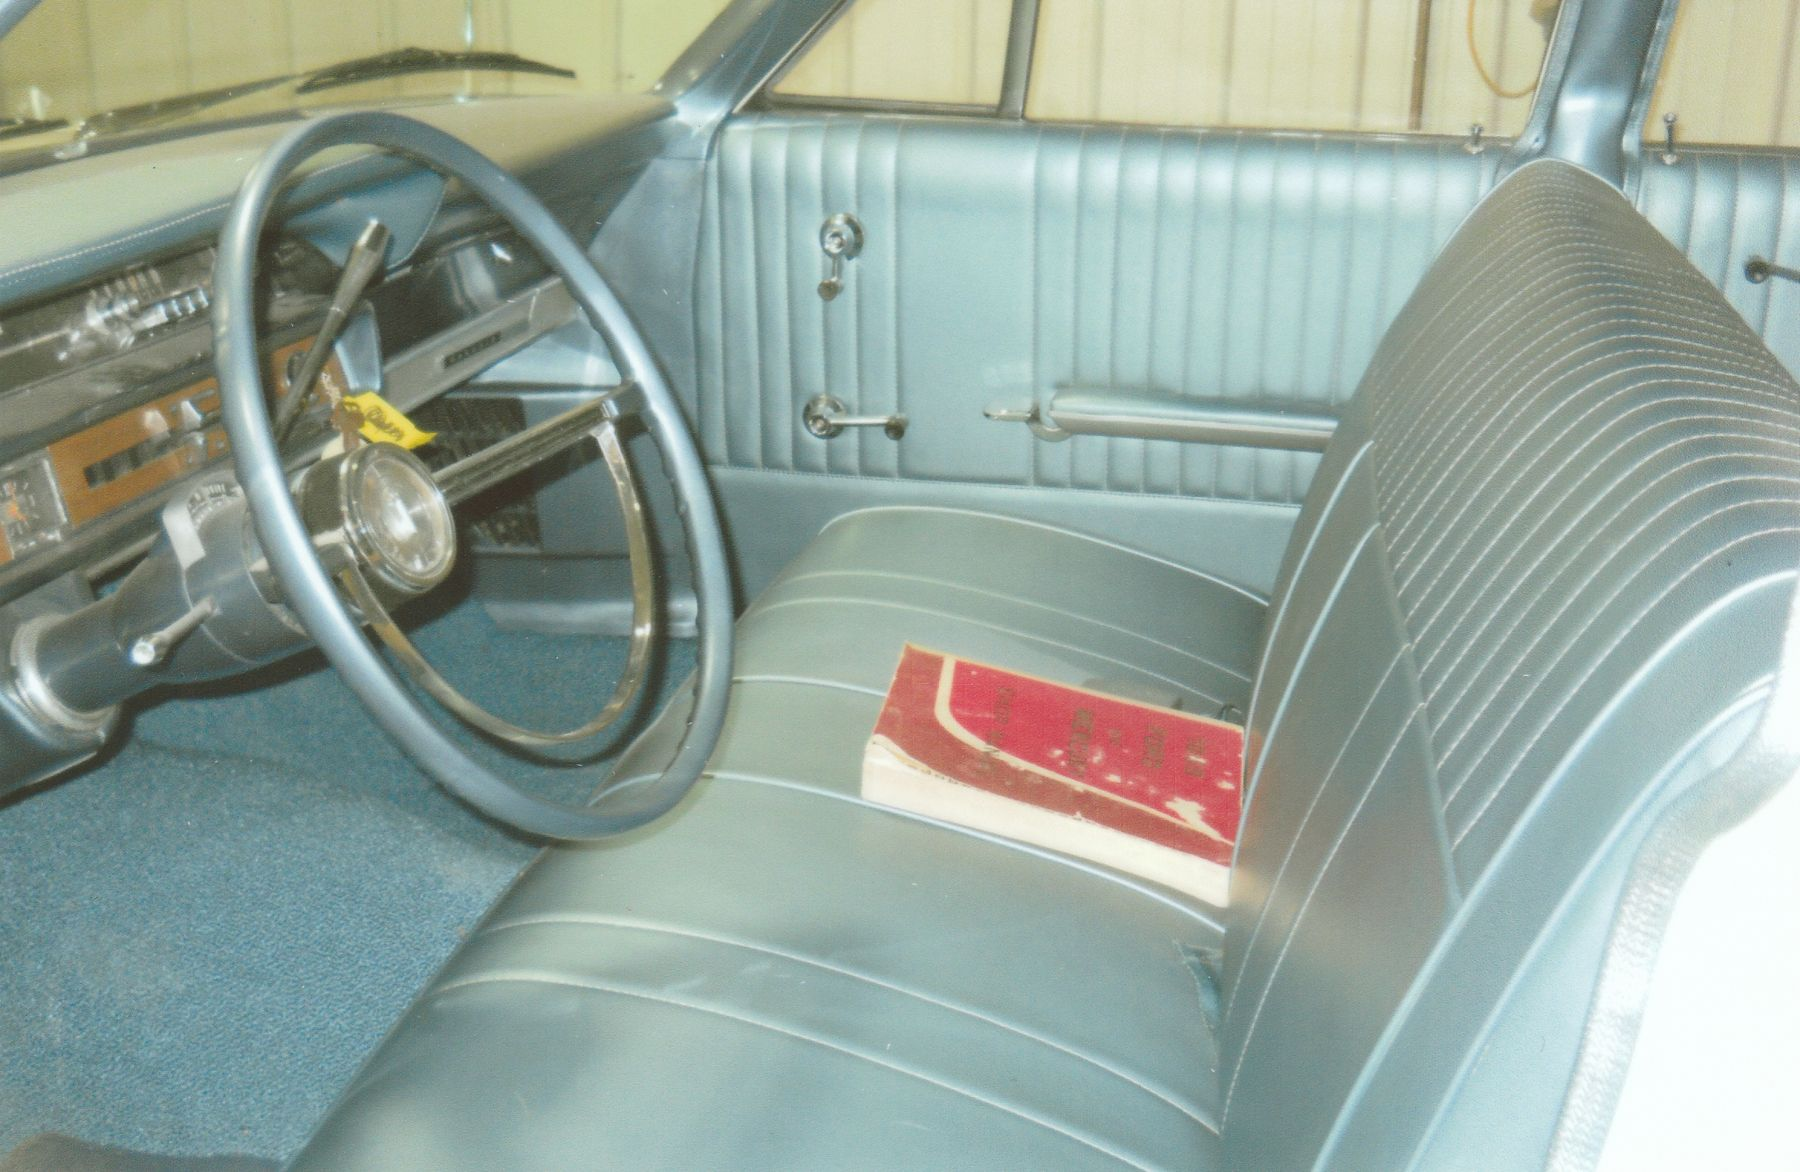 1966 Ford Galaxie 500 front seat and interior dash